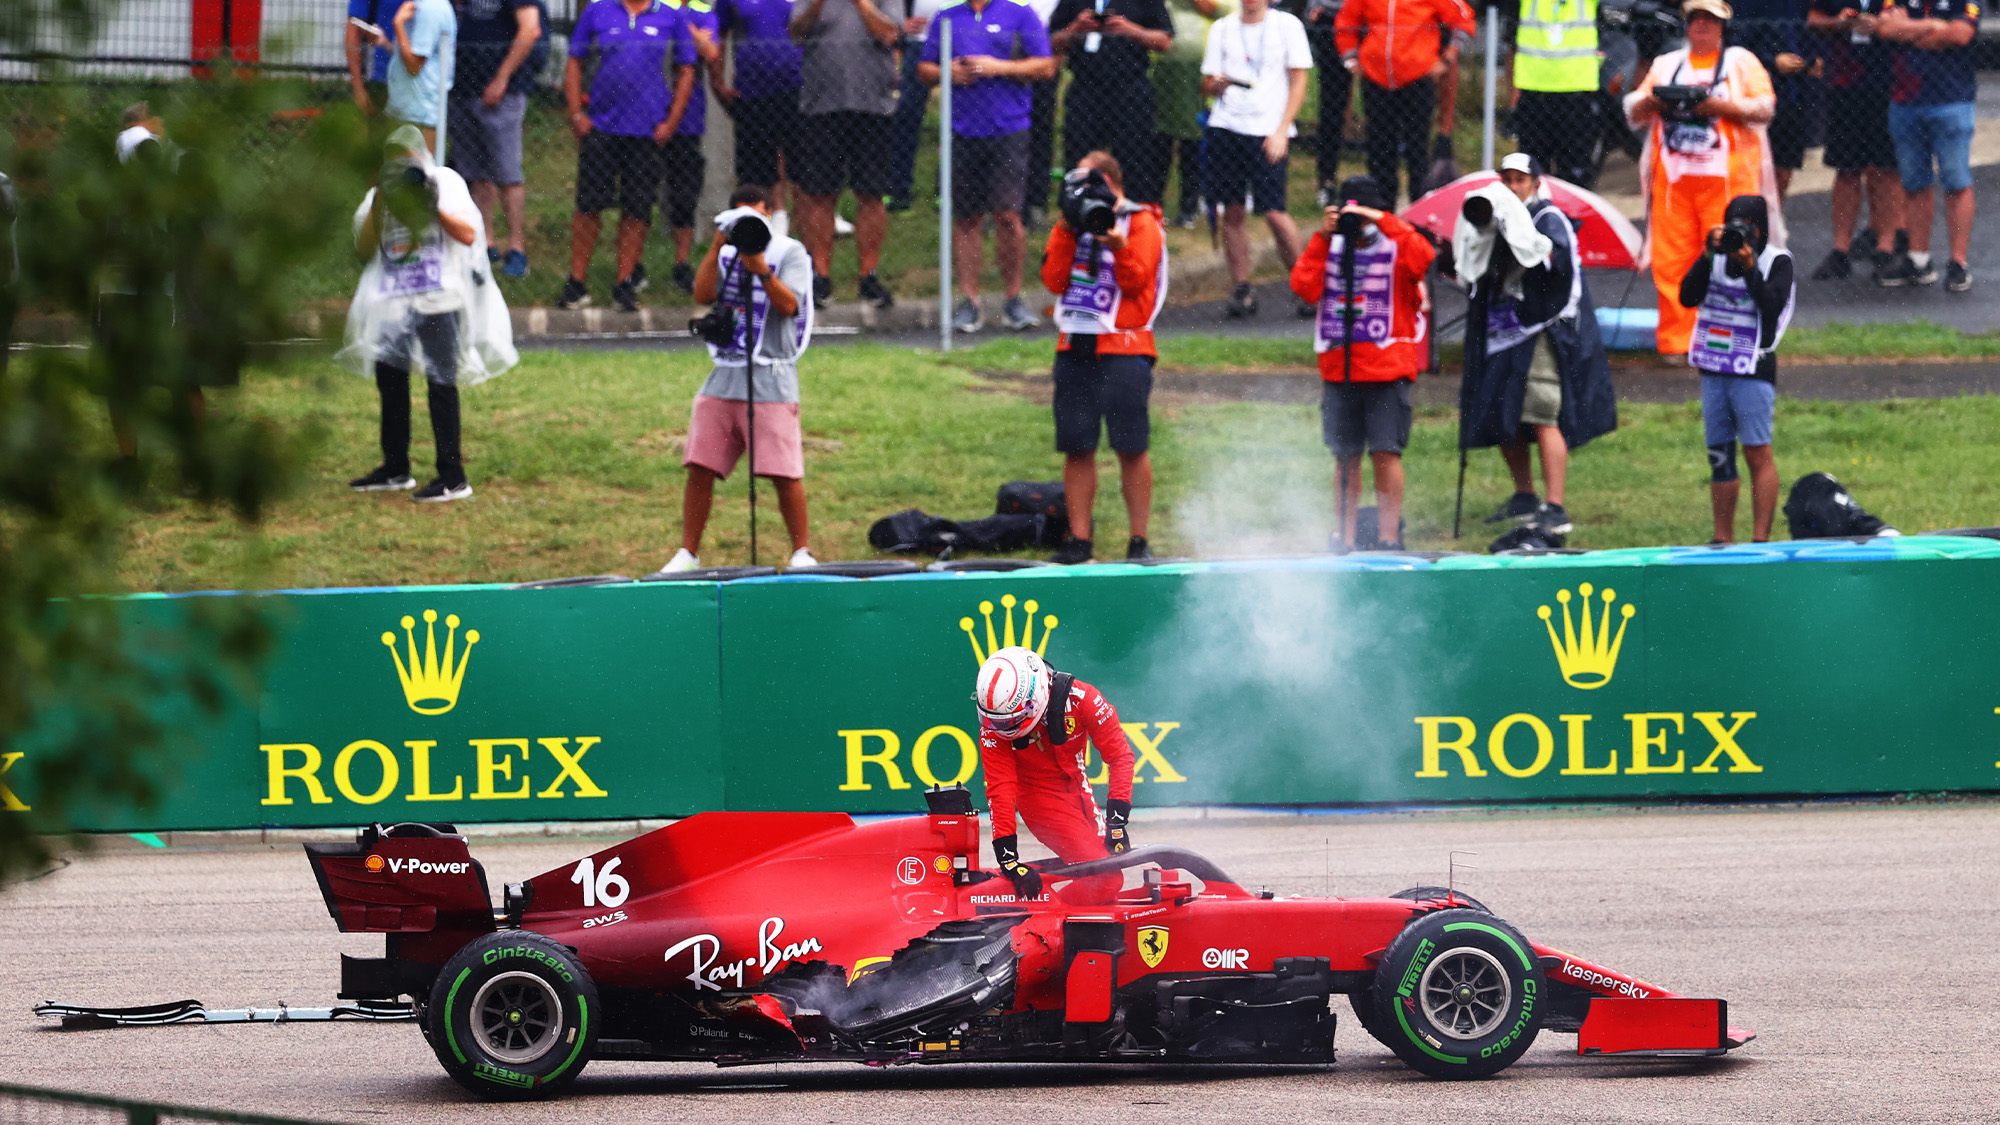 Charles Leclerc retires from the 2021 Hungarian Grand Prix